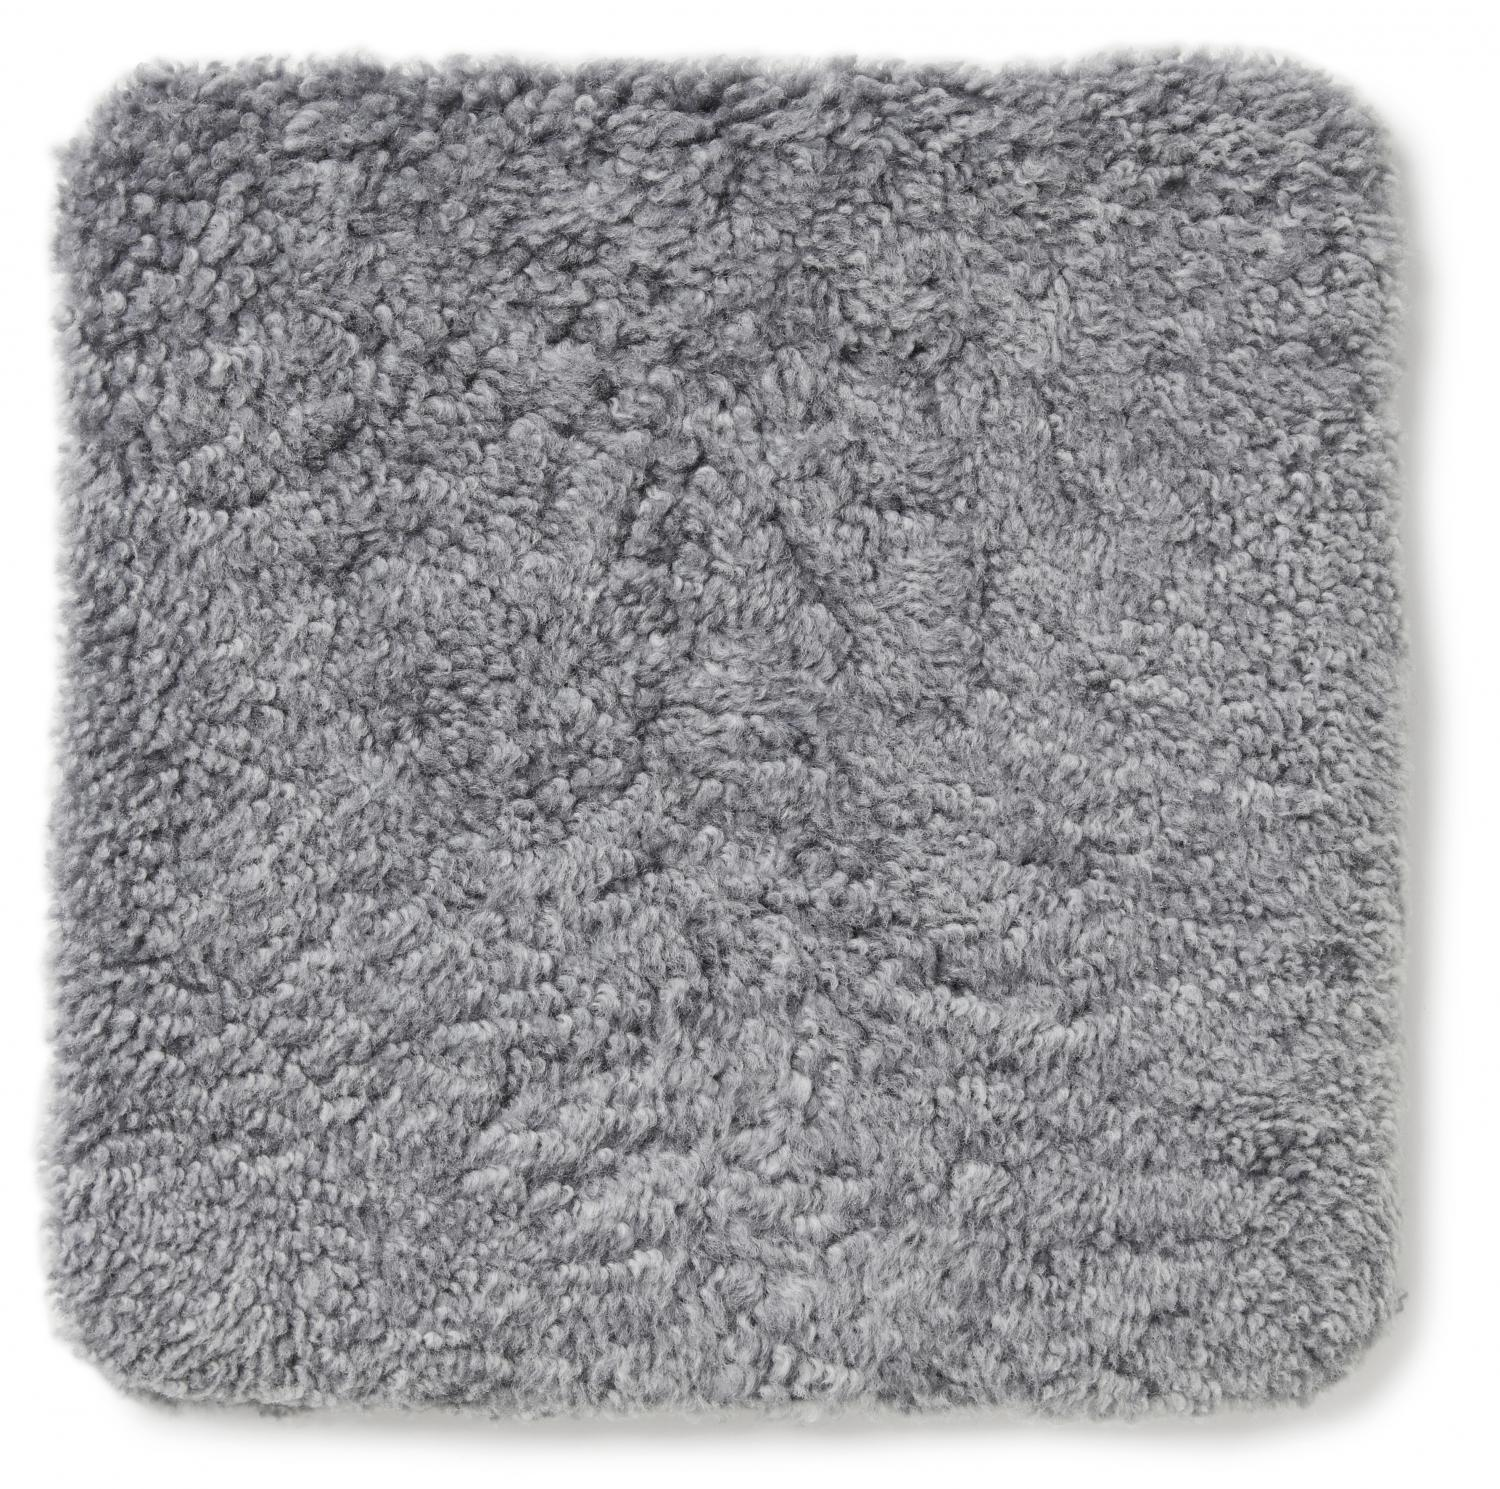 Curly Pad 40x40 - Charcoal Silvergrey